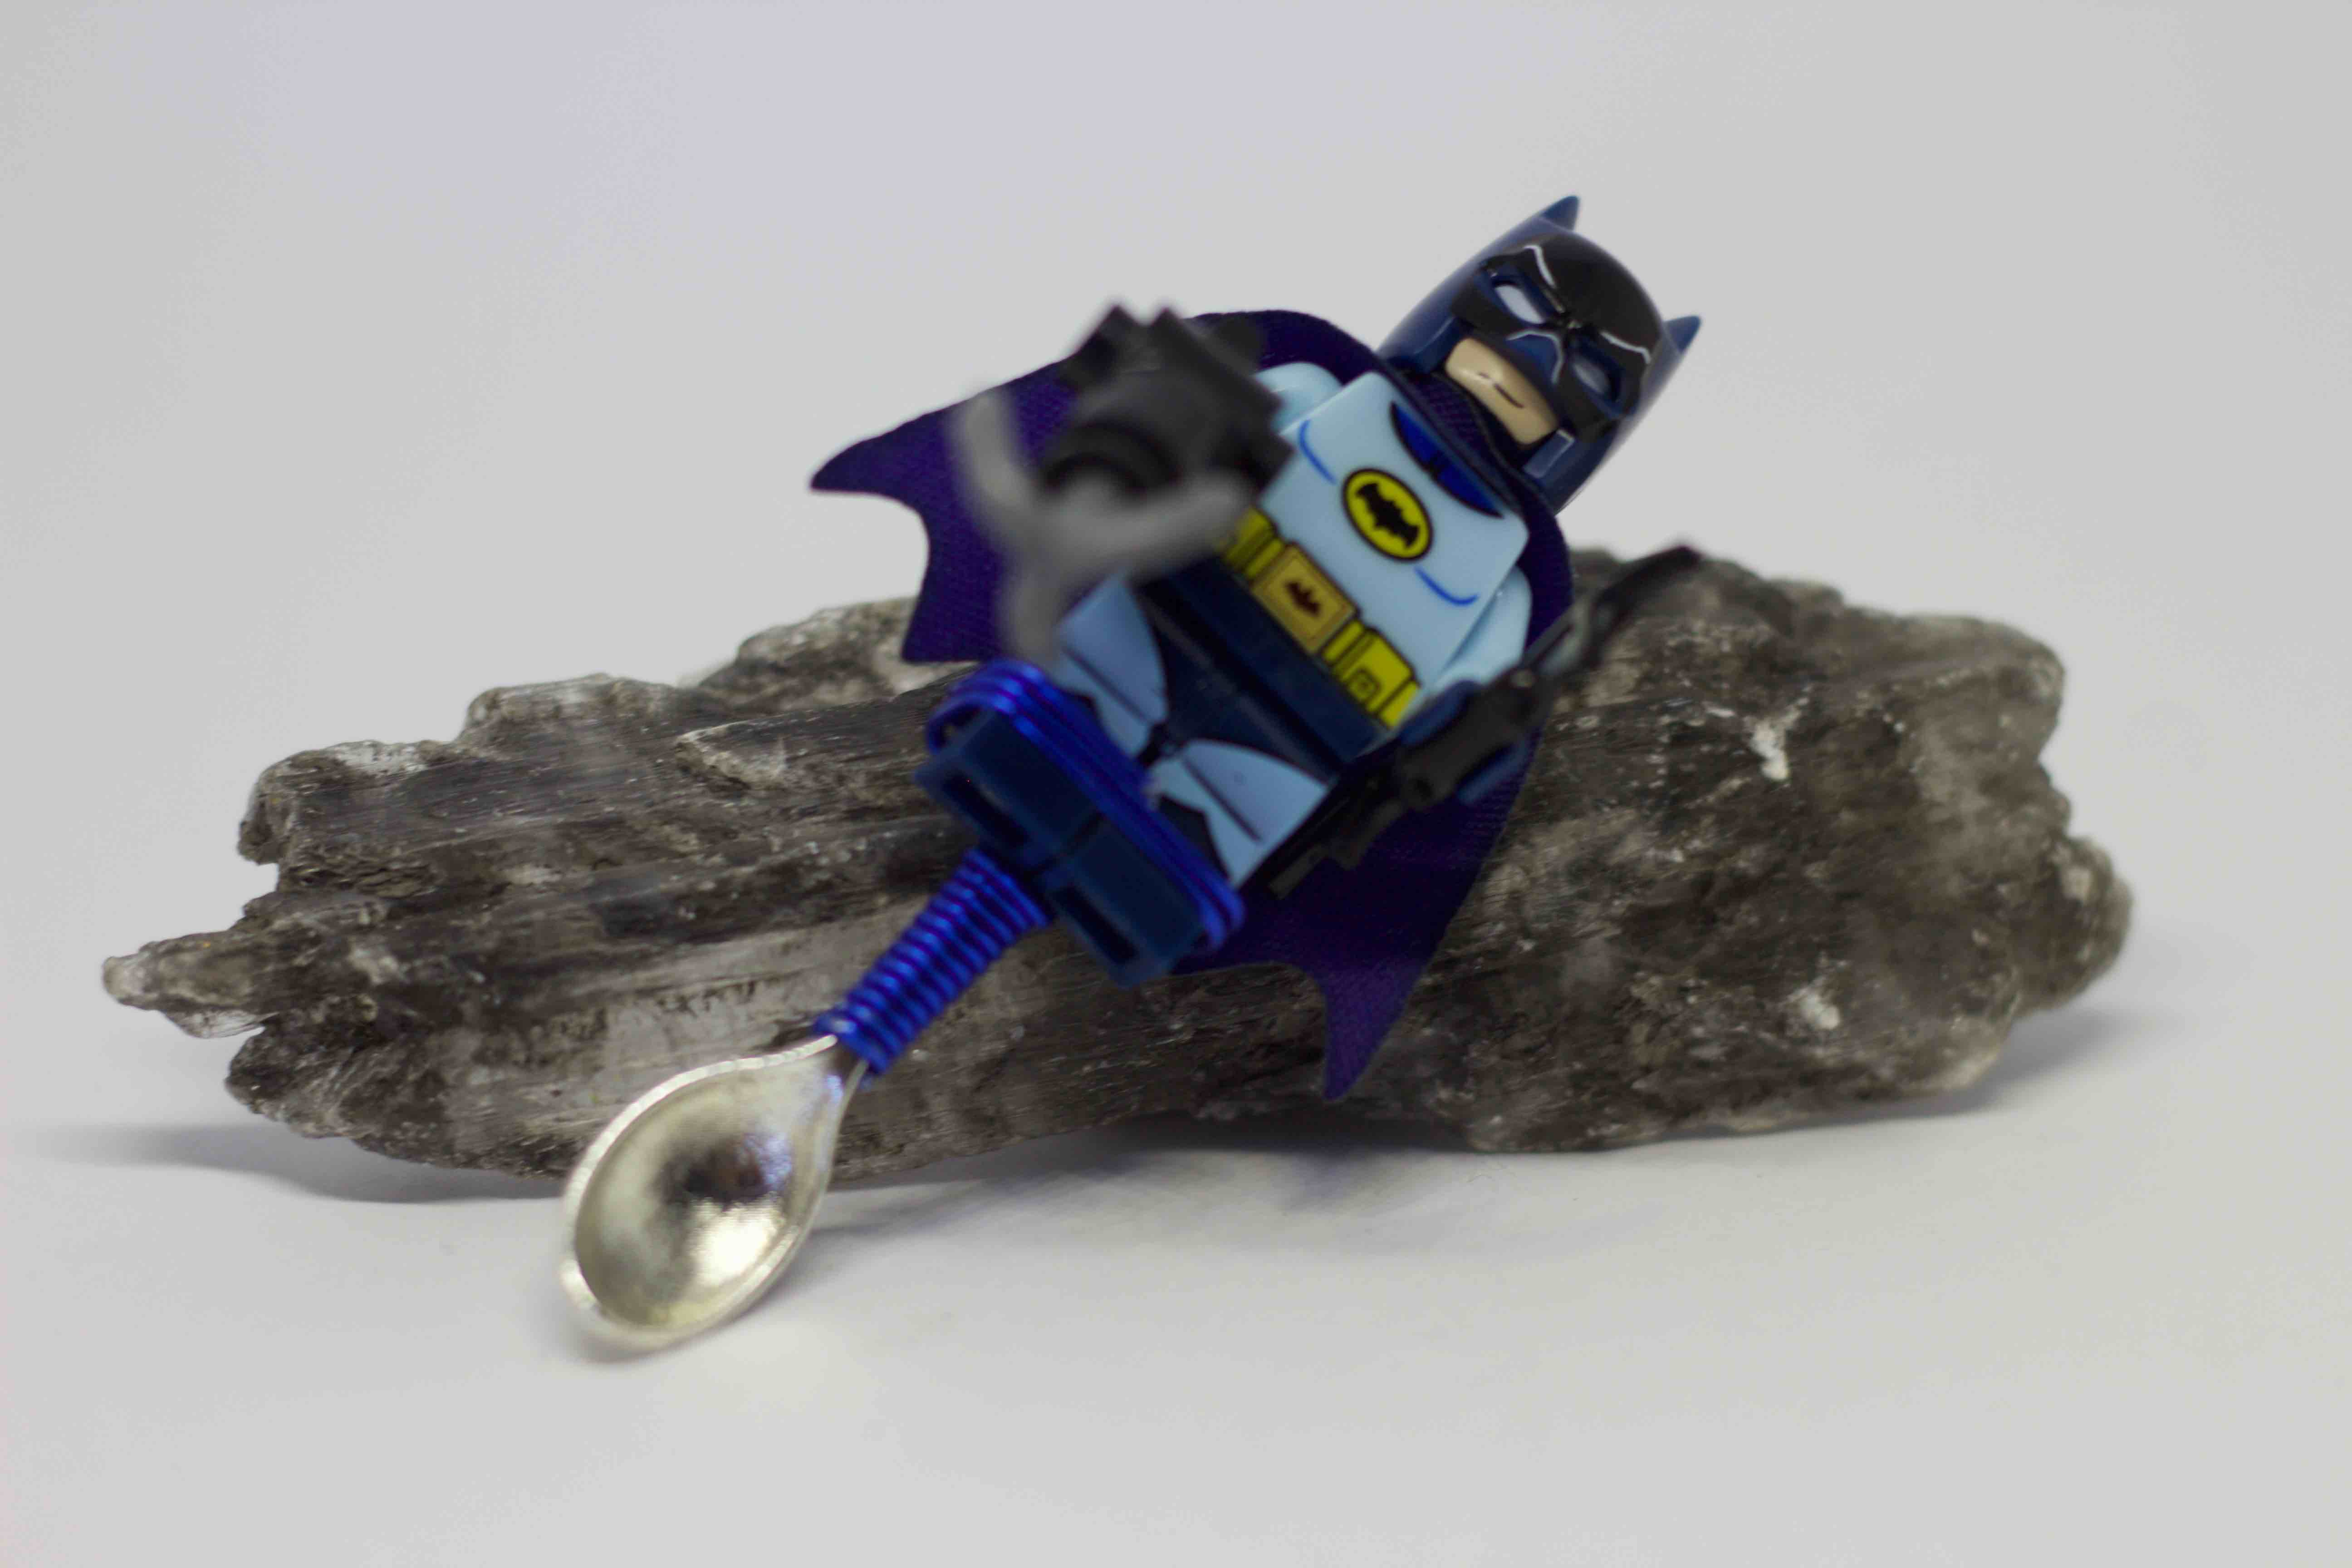 Lego Batman Spoon